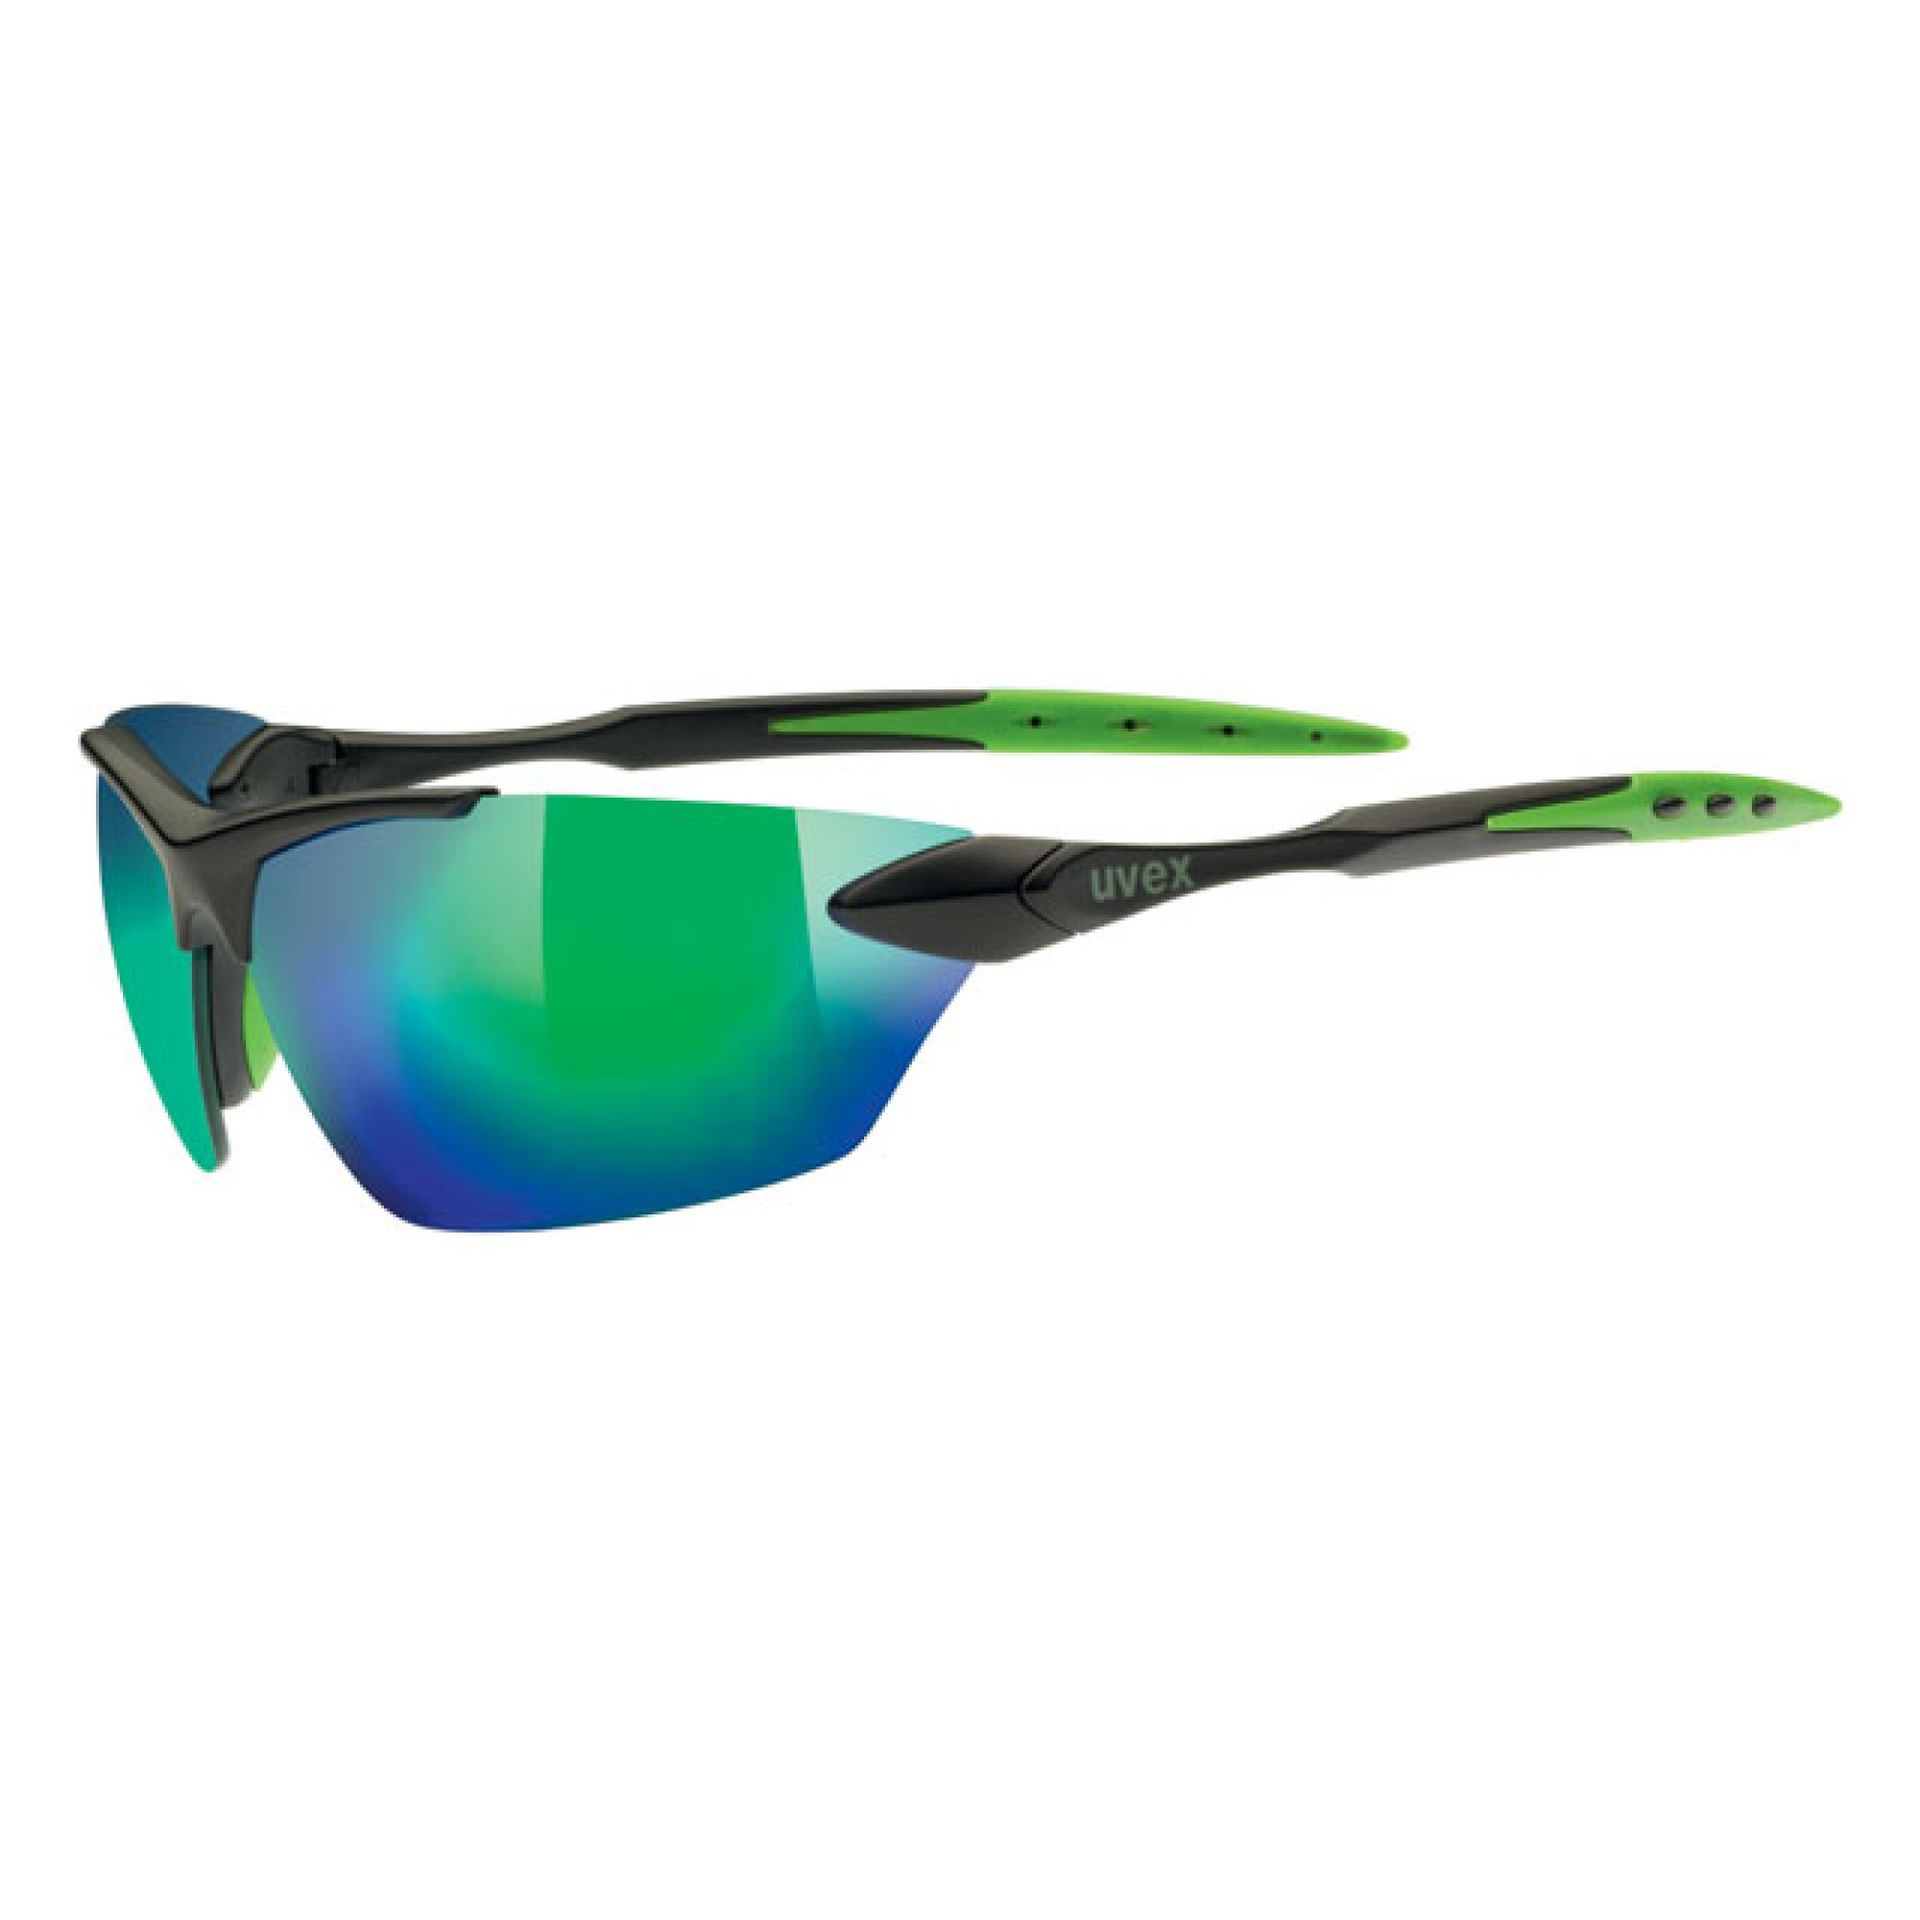 OKULARY UVEX SPORTSTYLE 203 BLACH MAT GREEN